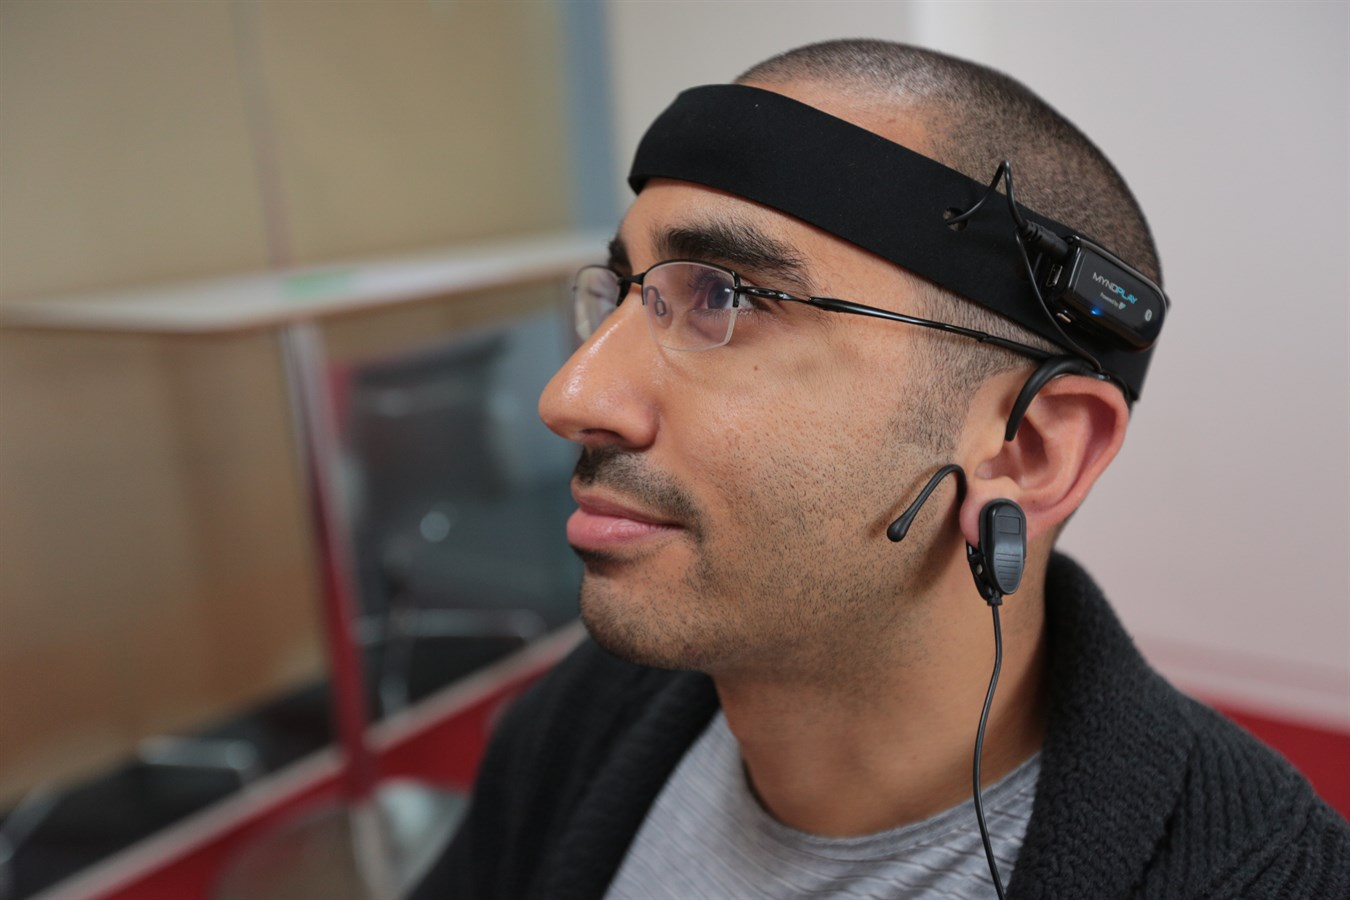 Volvo Cars' world first experiment reveals the emotive power of car design